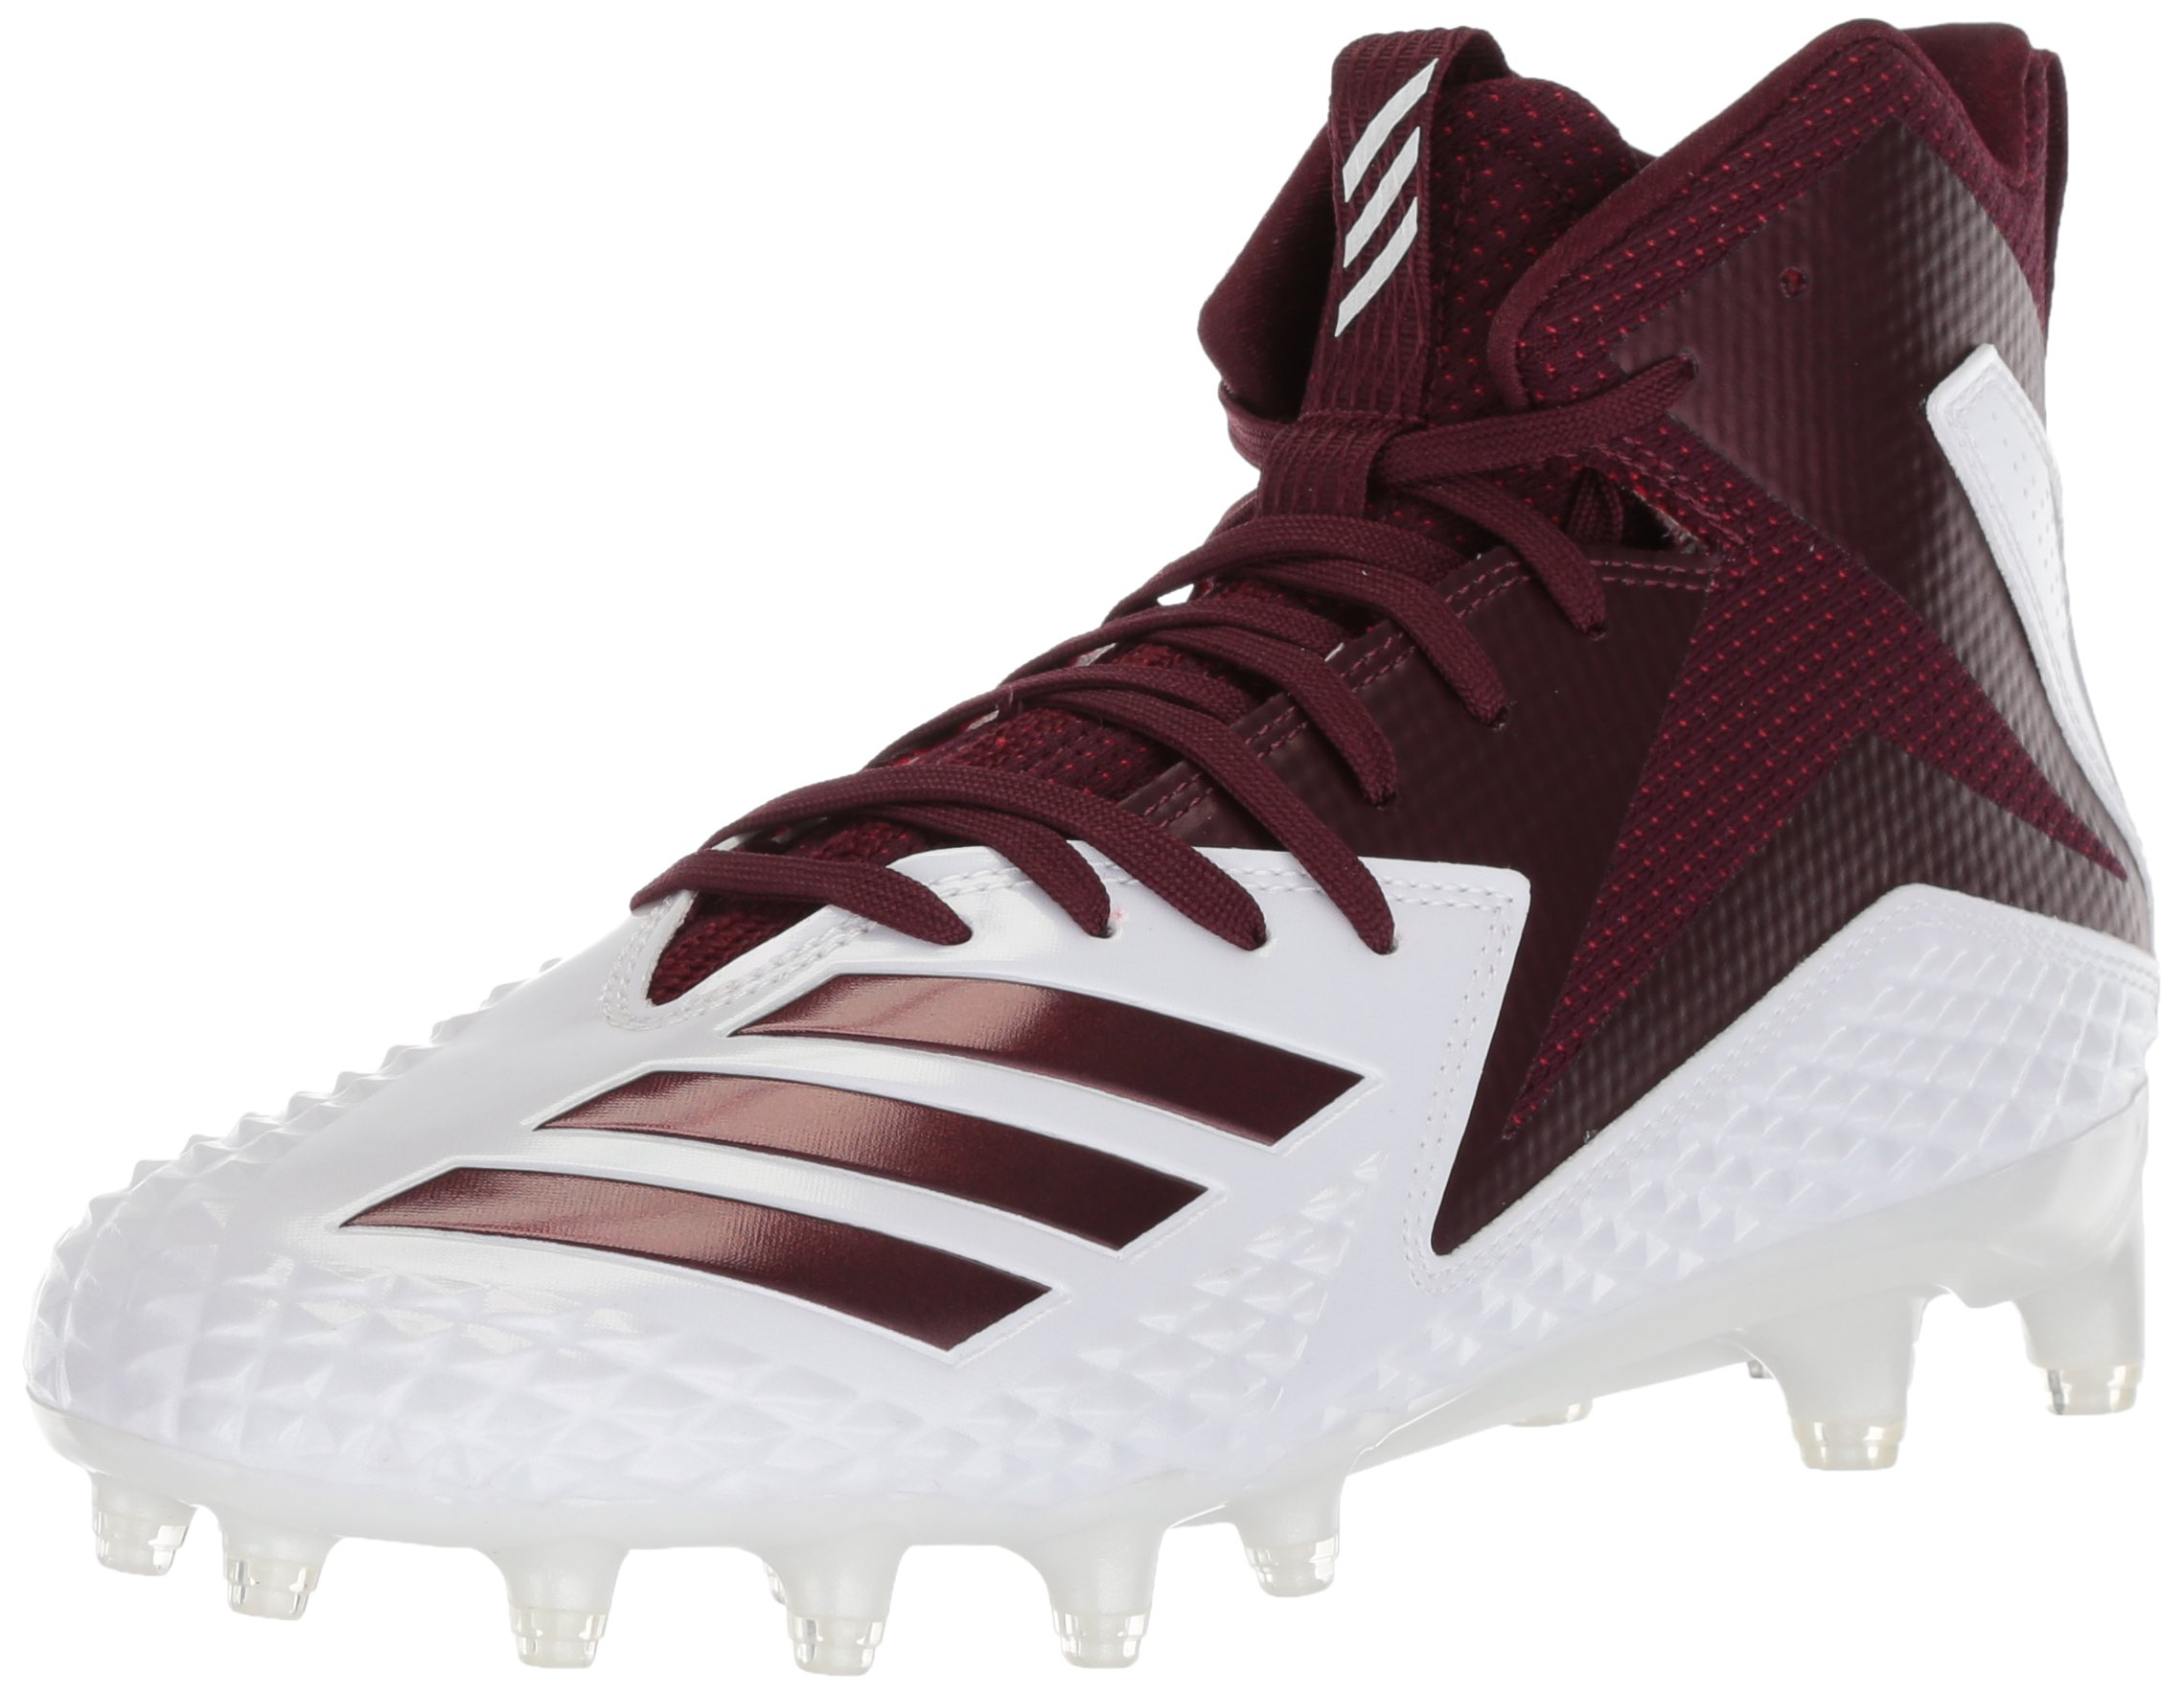 adidas Men's Freak X Carbon Mid Football Shoe, White/Maroon/Maroon, 12 M US by adidas